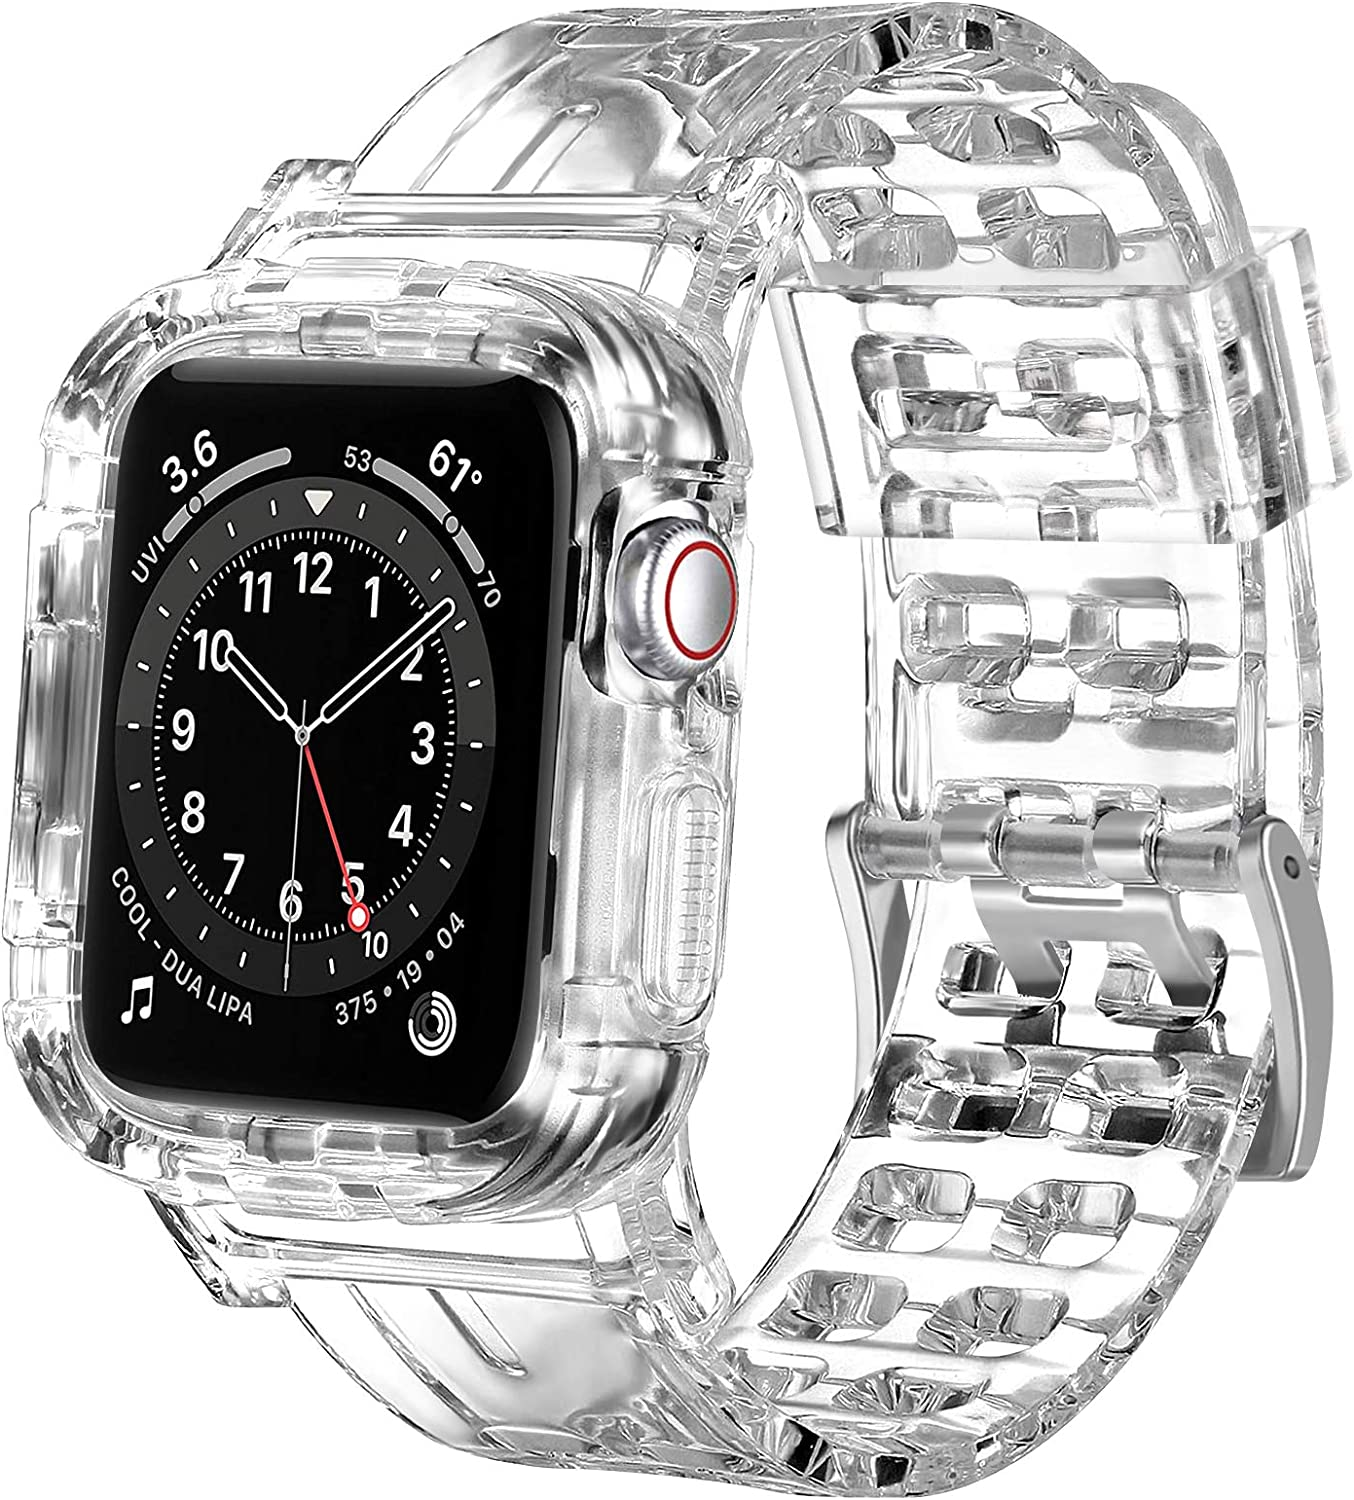 Vanjua Bands Compatible for Apple Watch Bands 38mm 40mm 42mm 44mm, Silicone Band with Case All-around Protective Shockproof Band for iWatch SE Series 6 5 4 3 2 (38mm/40mm, Transparent)